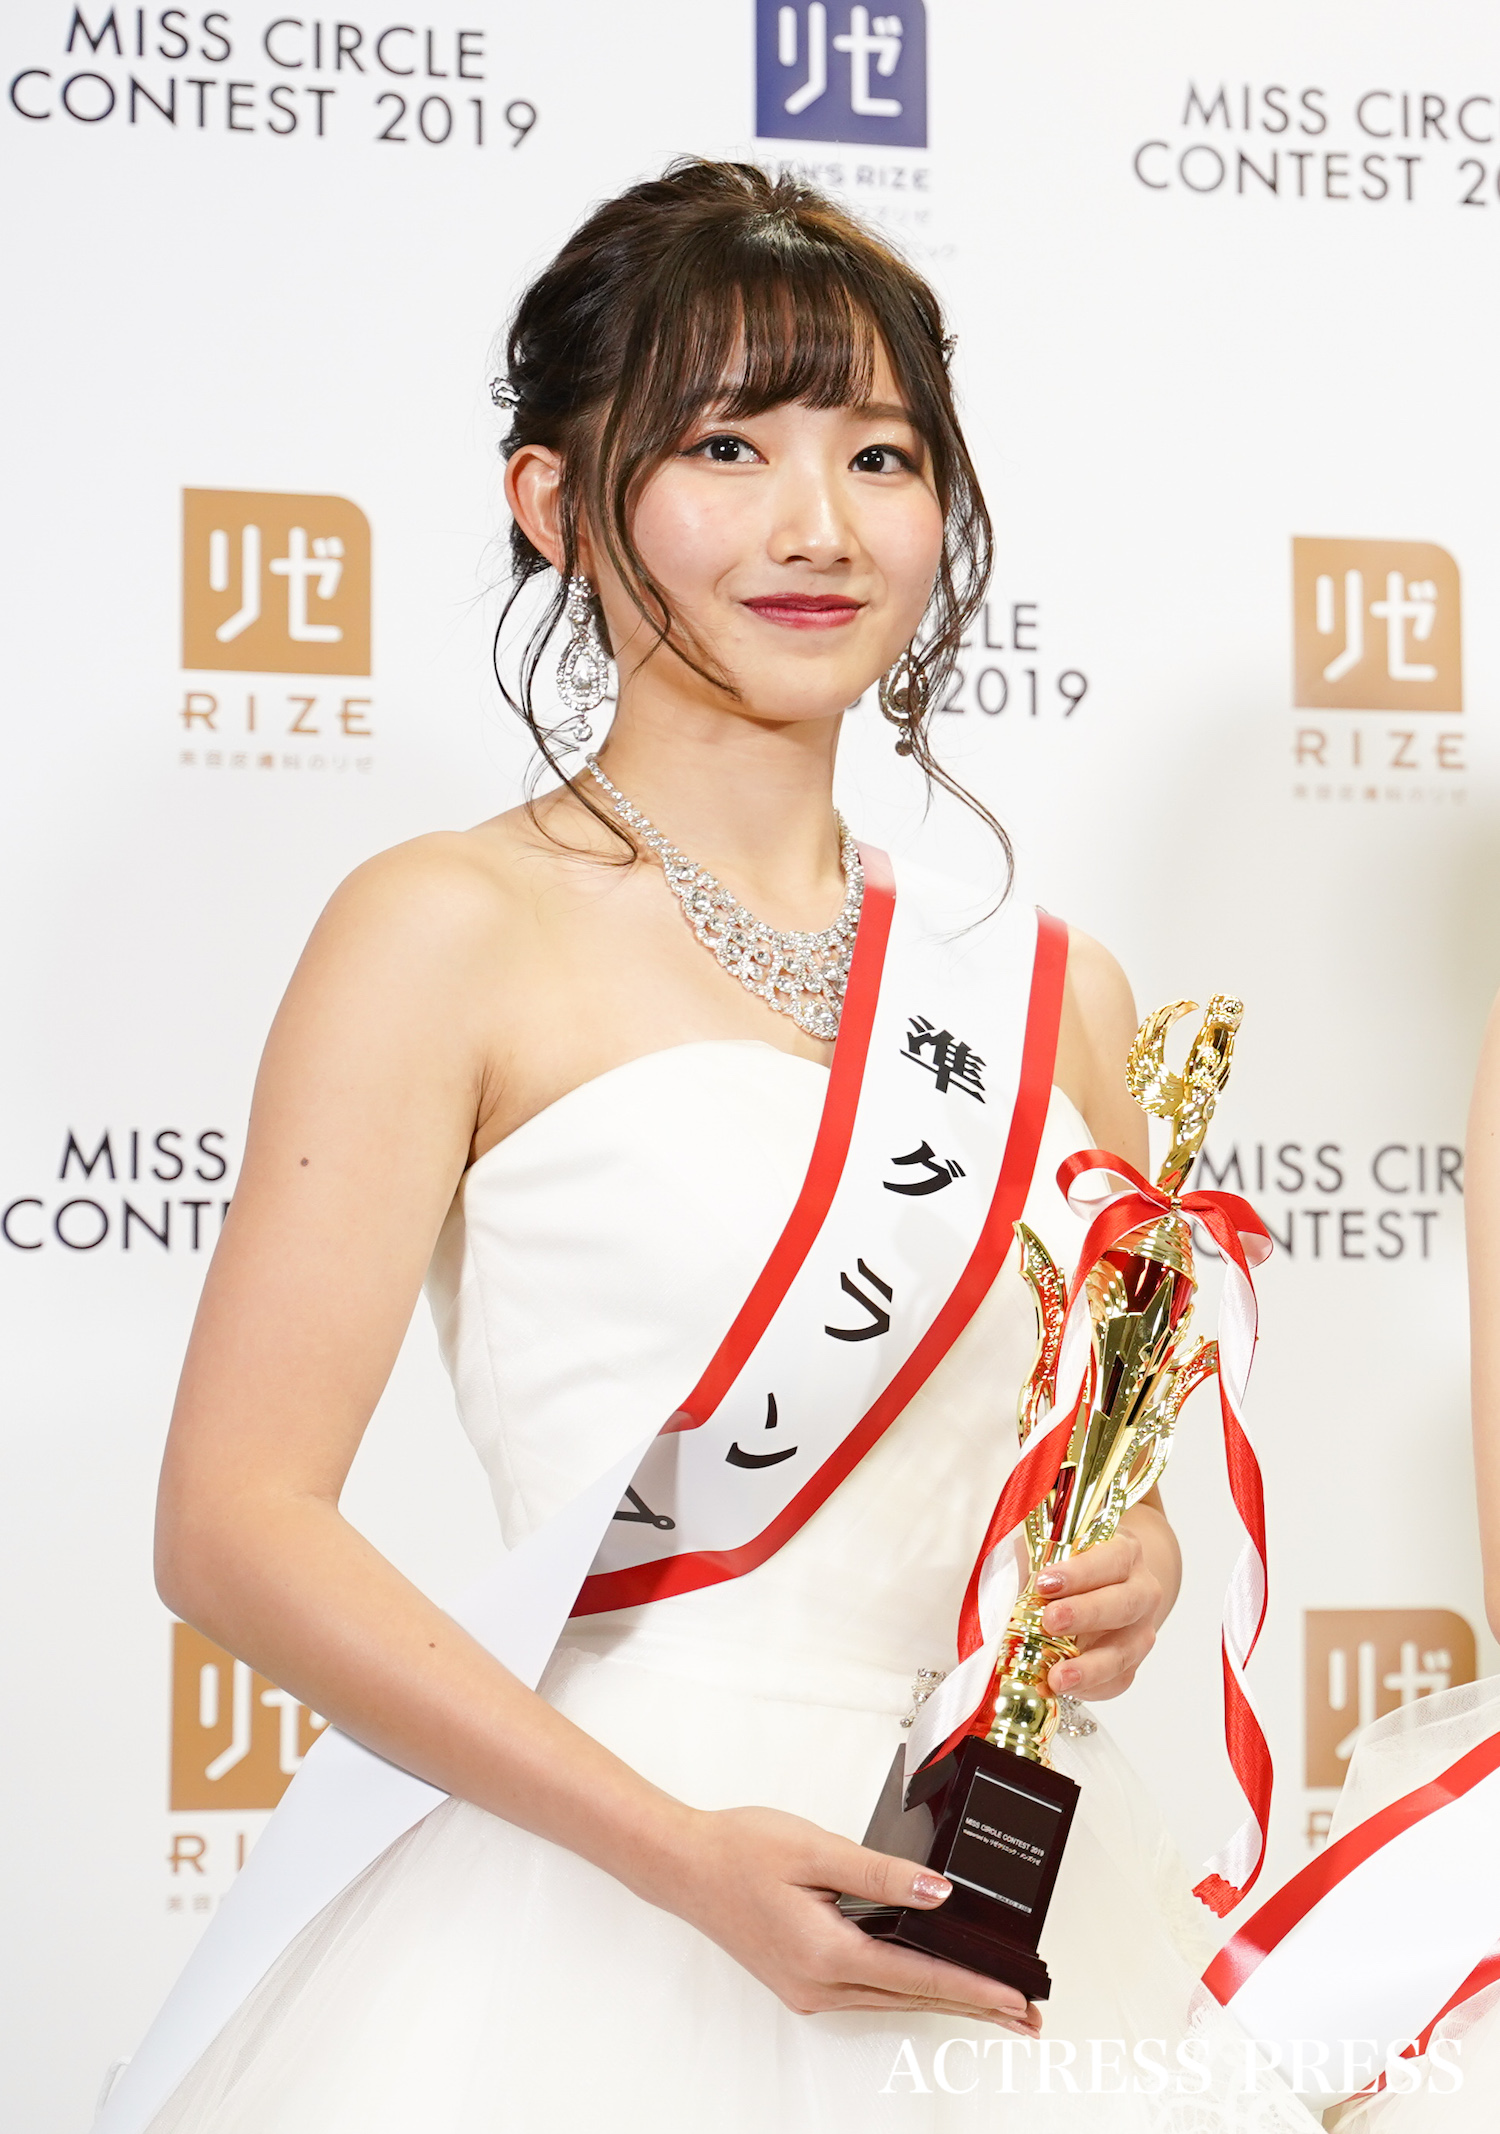 「MISS CIRCLE CONTEST 2019」(ミスサークルコンテスト)受賞者